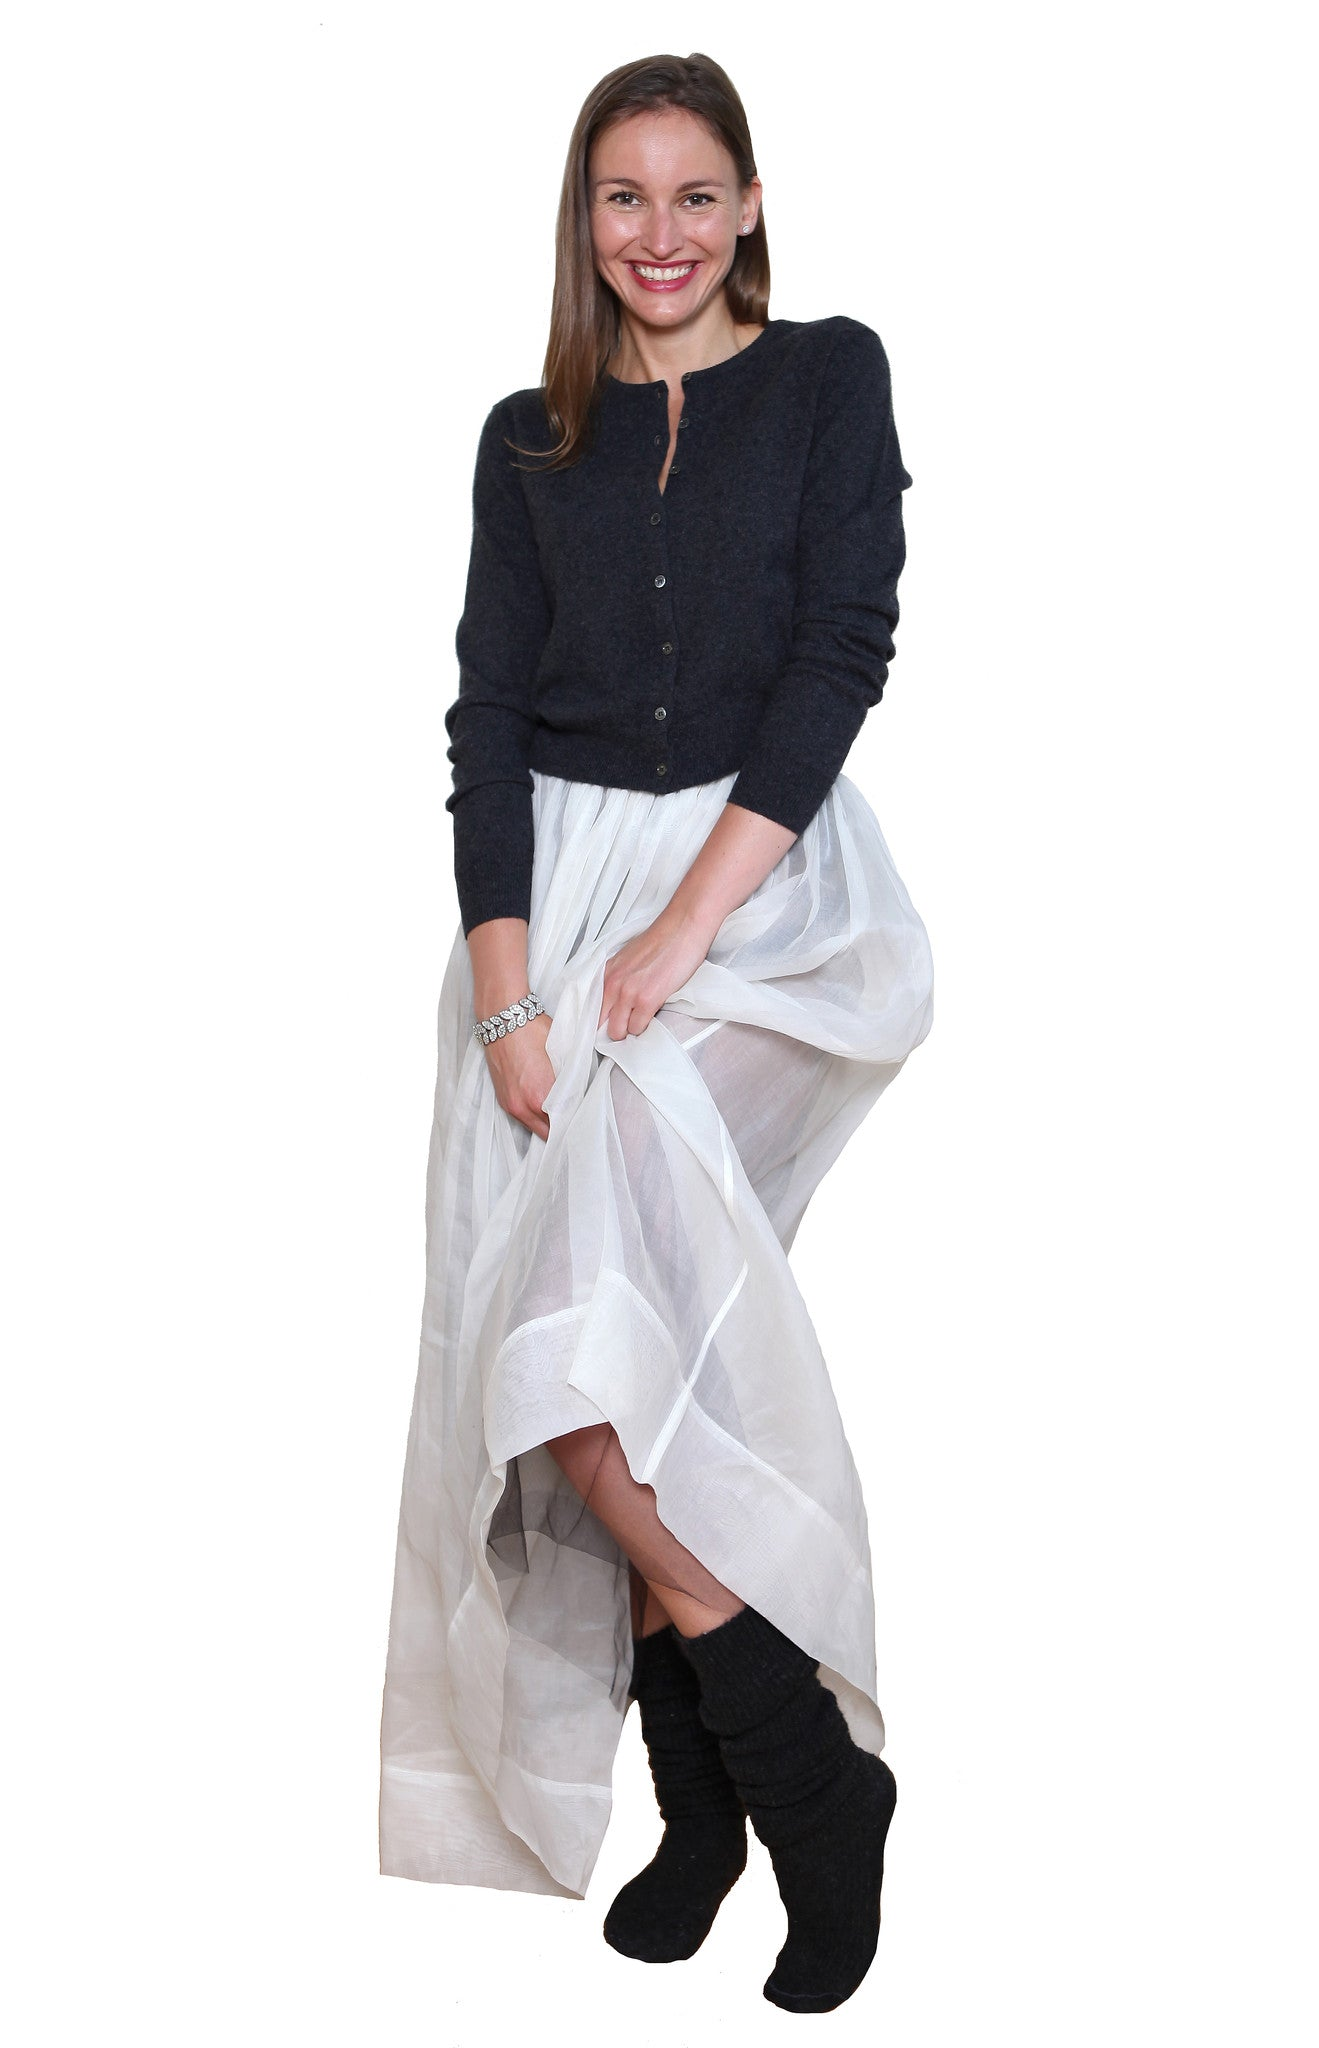 SKIRT LONG ORGANDIE WHITE - Jenny M. London  - 2